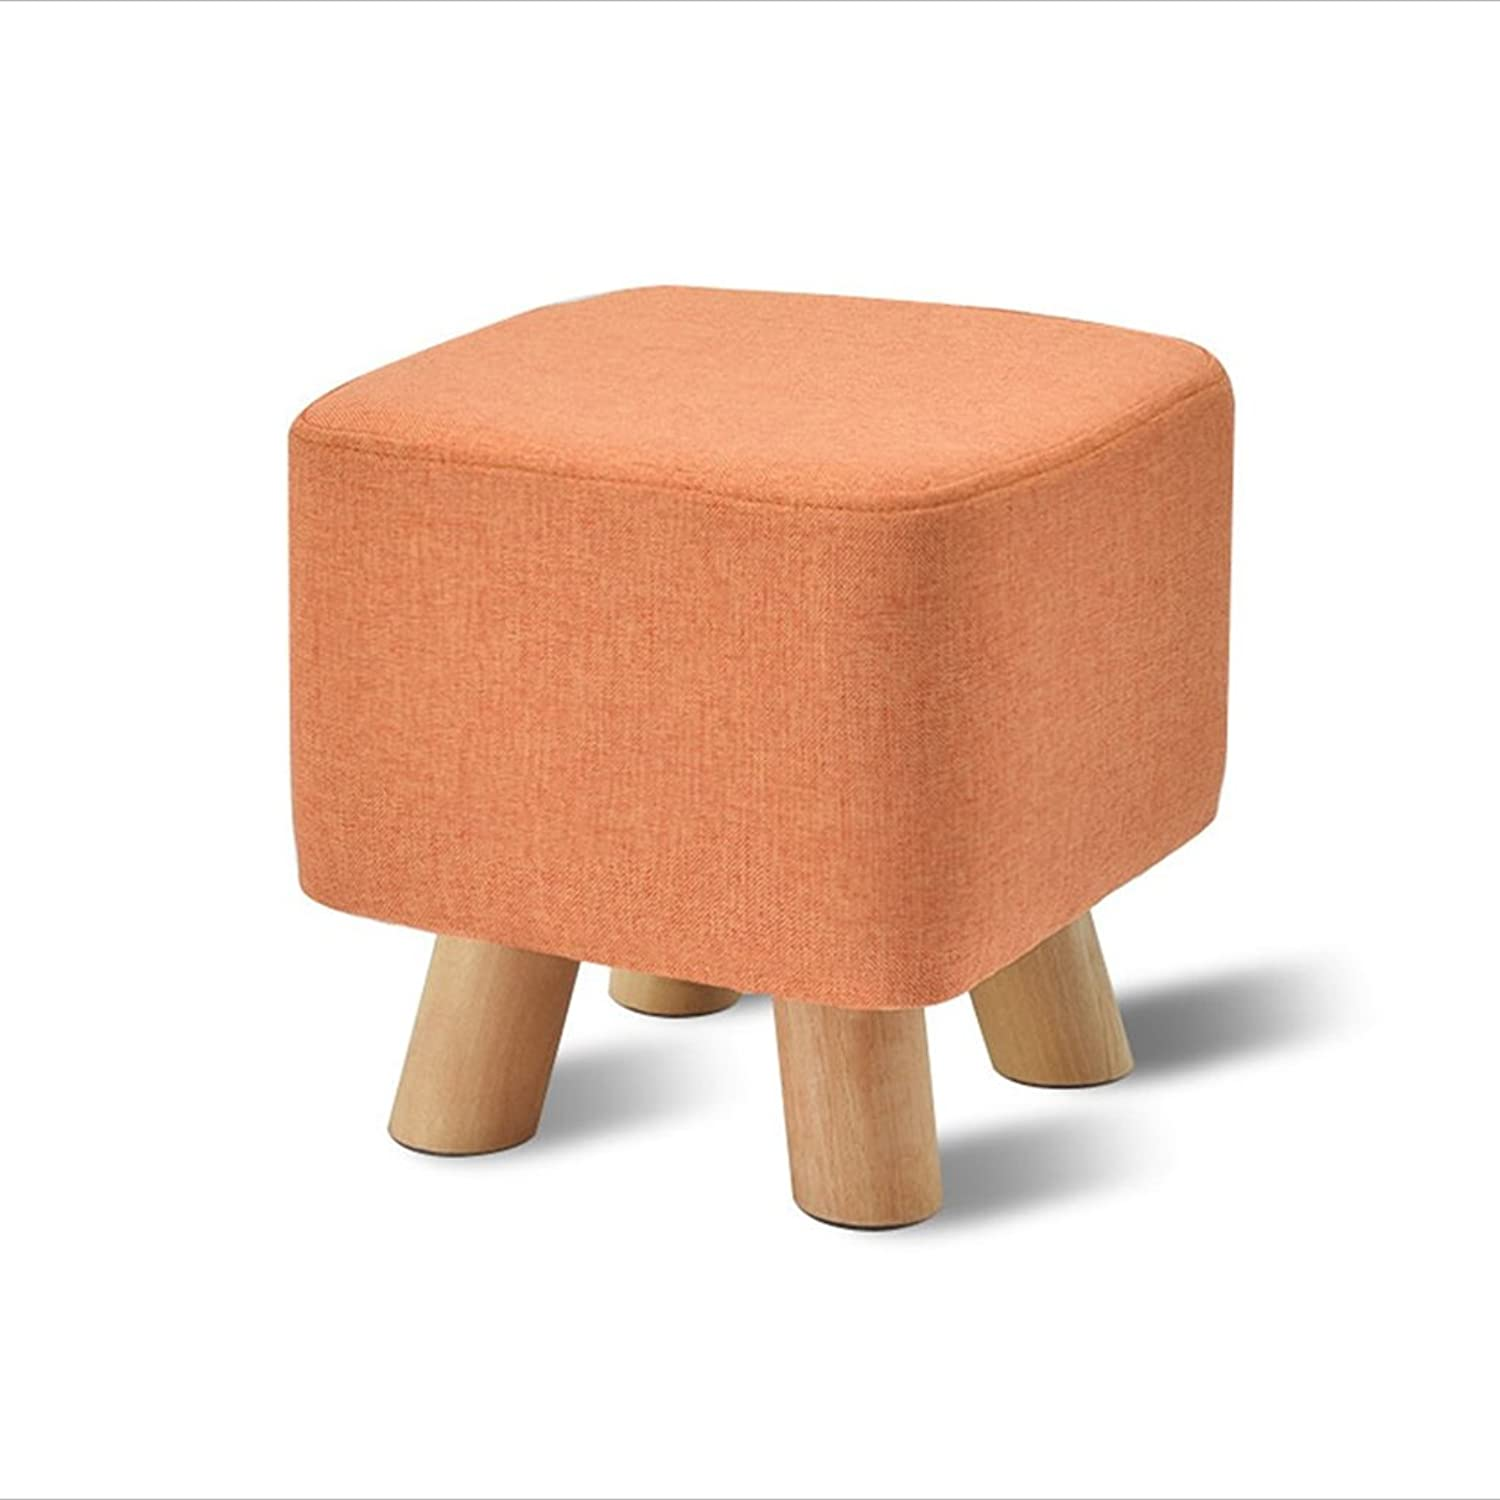 Simple Solid Wood Bench Change The shoes stools Living Room stools Household Stool Fashion stools